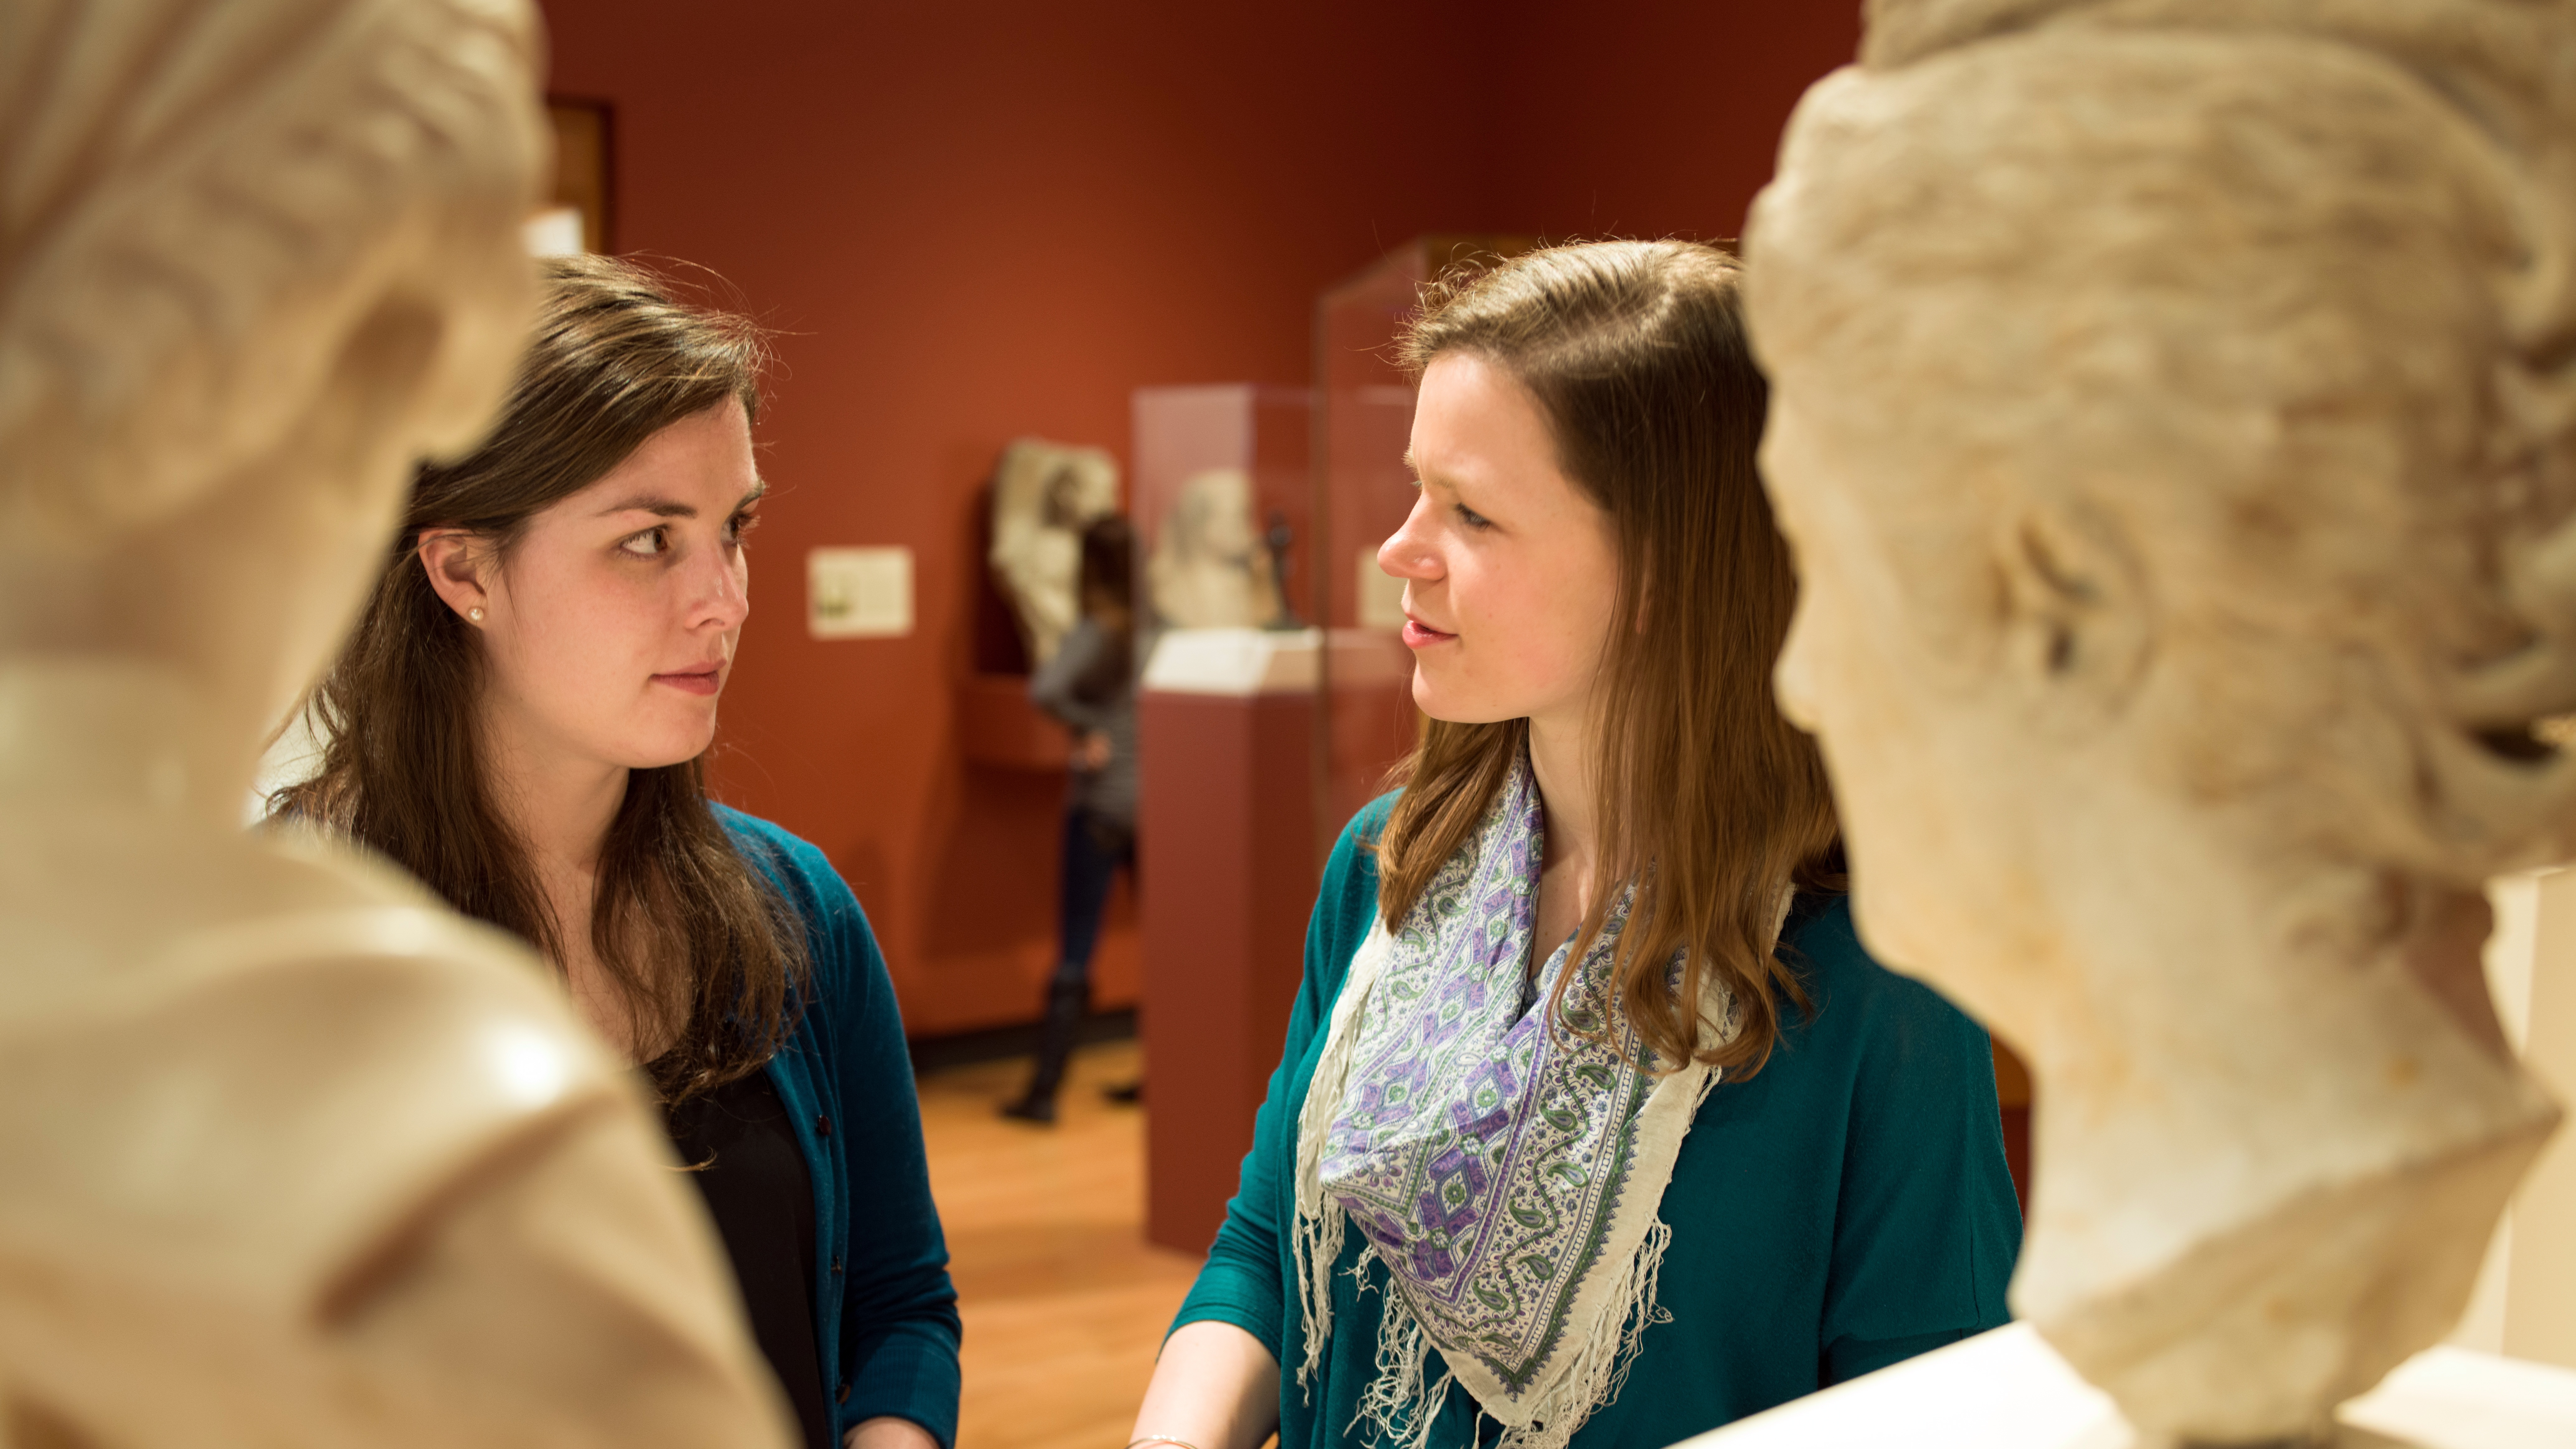 A conversation in the Art Museum